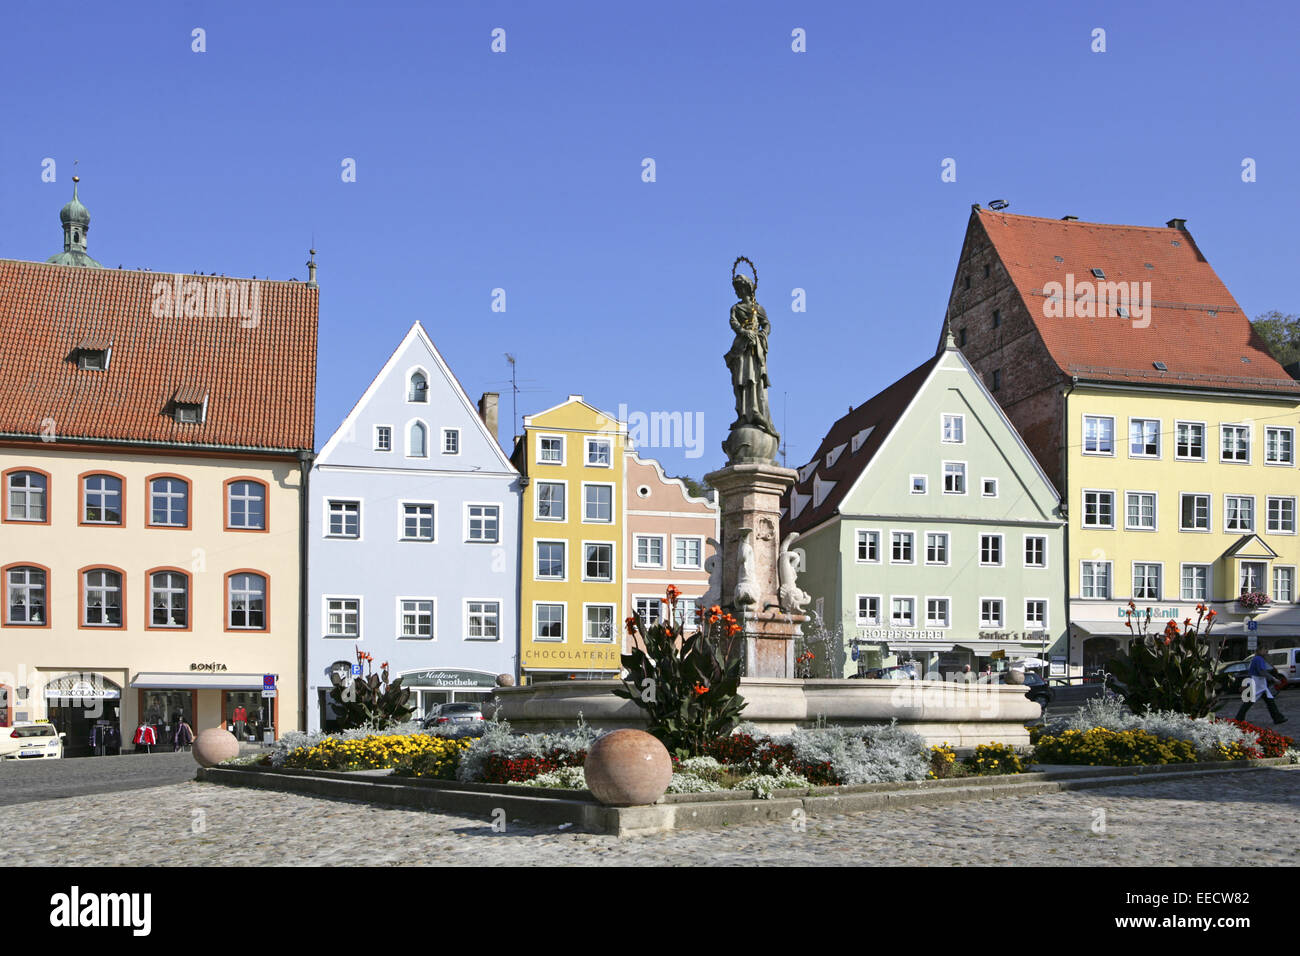 deutschland bayern landsberg am lech hauptplatz marienbrunnen stock photo royalty free. Black Bedroom Furniture Sets. Home Design Ideas